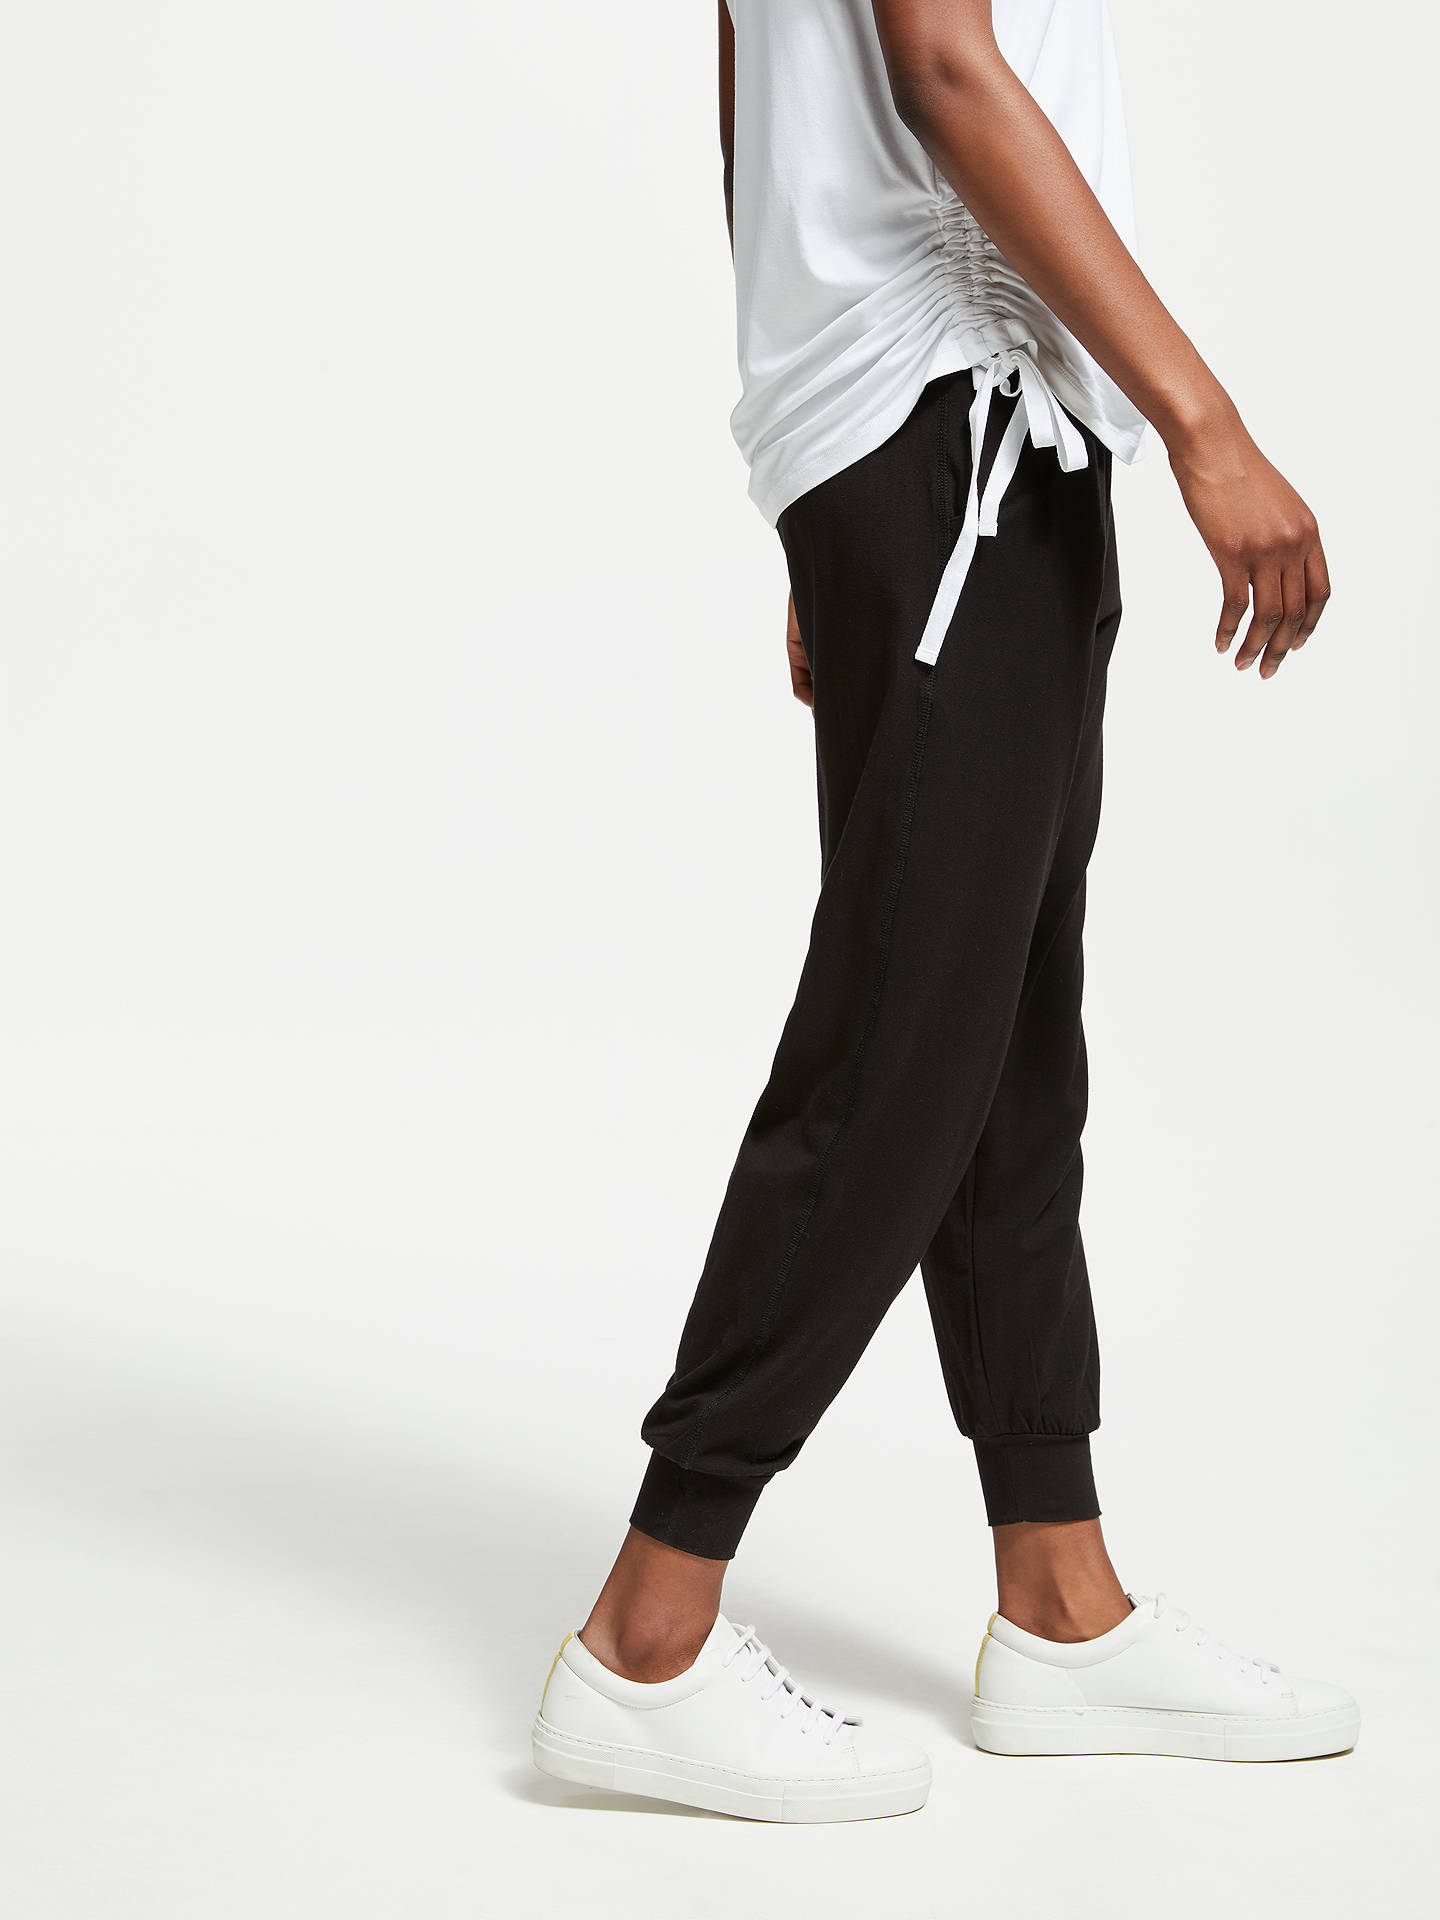 BuyThought Dashka Trousers, Black, 8 Online at johnlewis.com